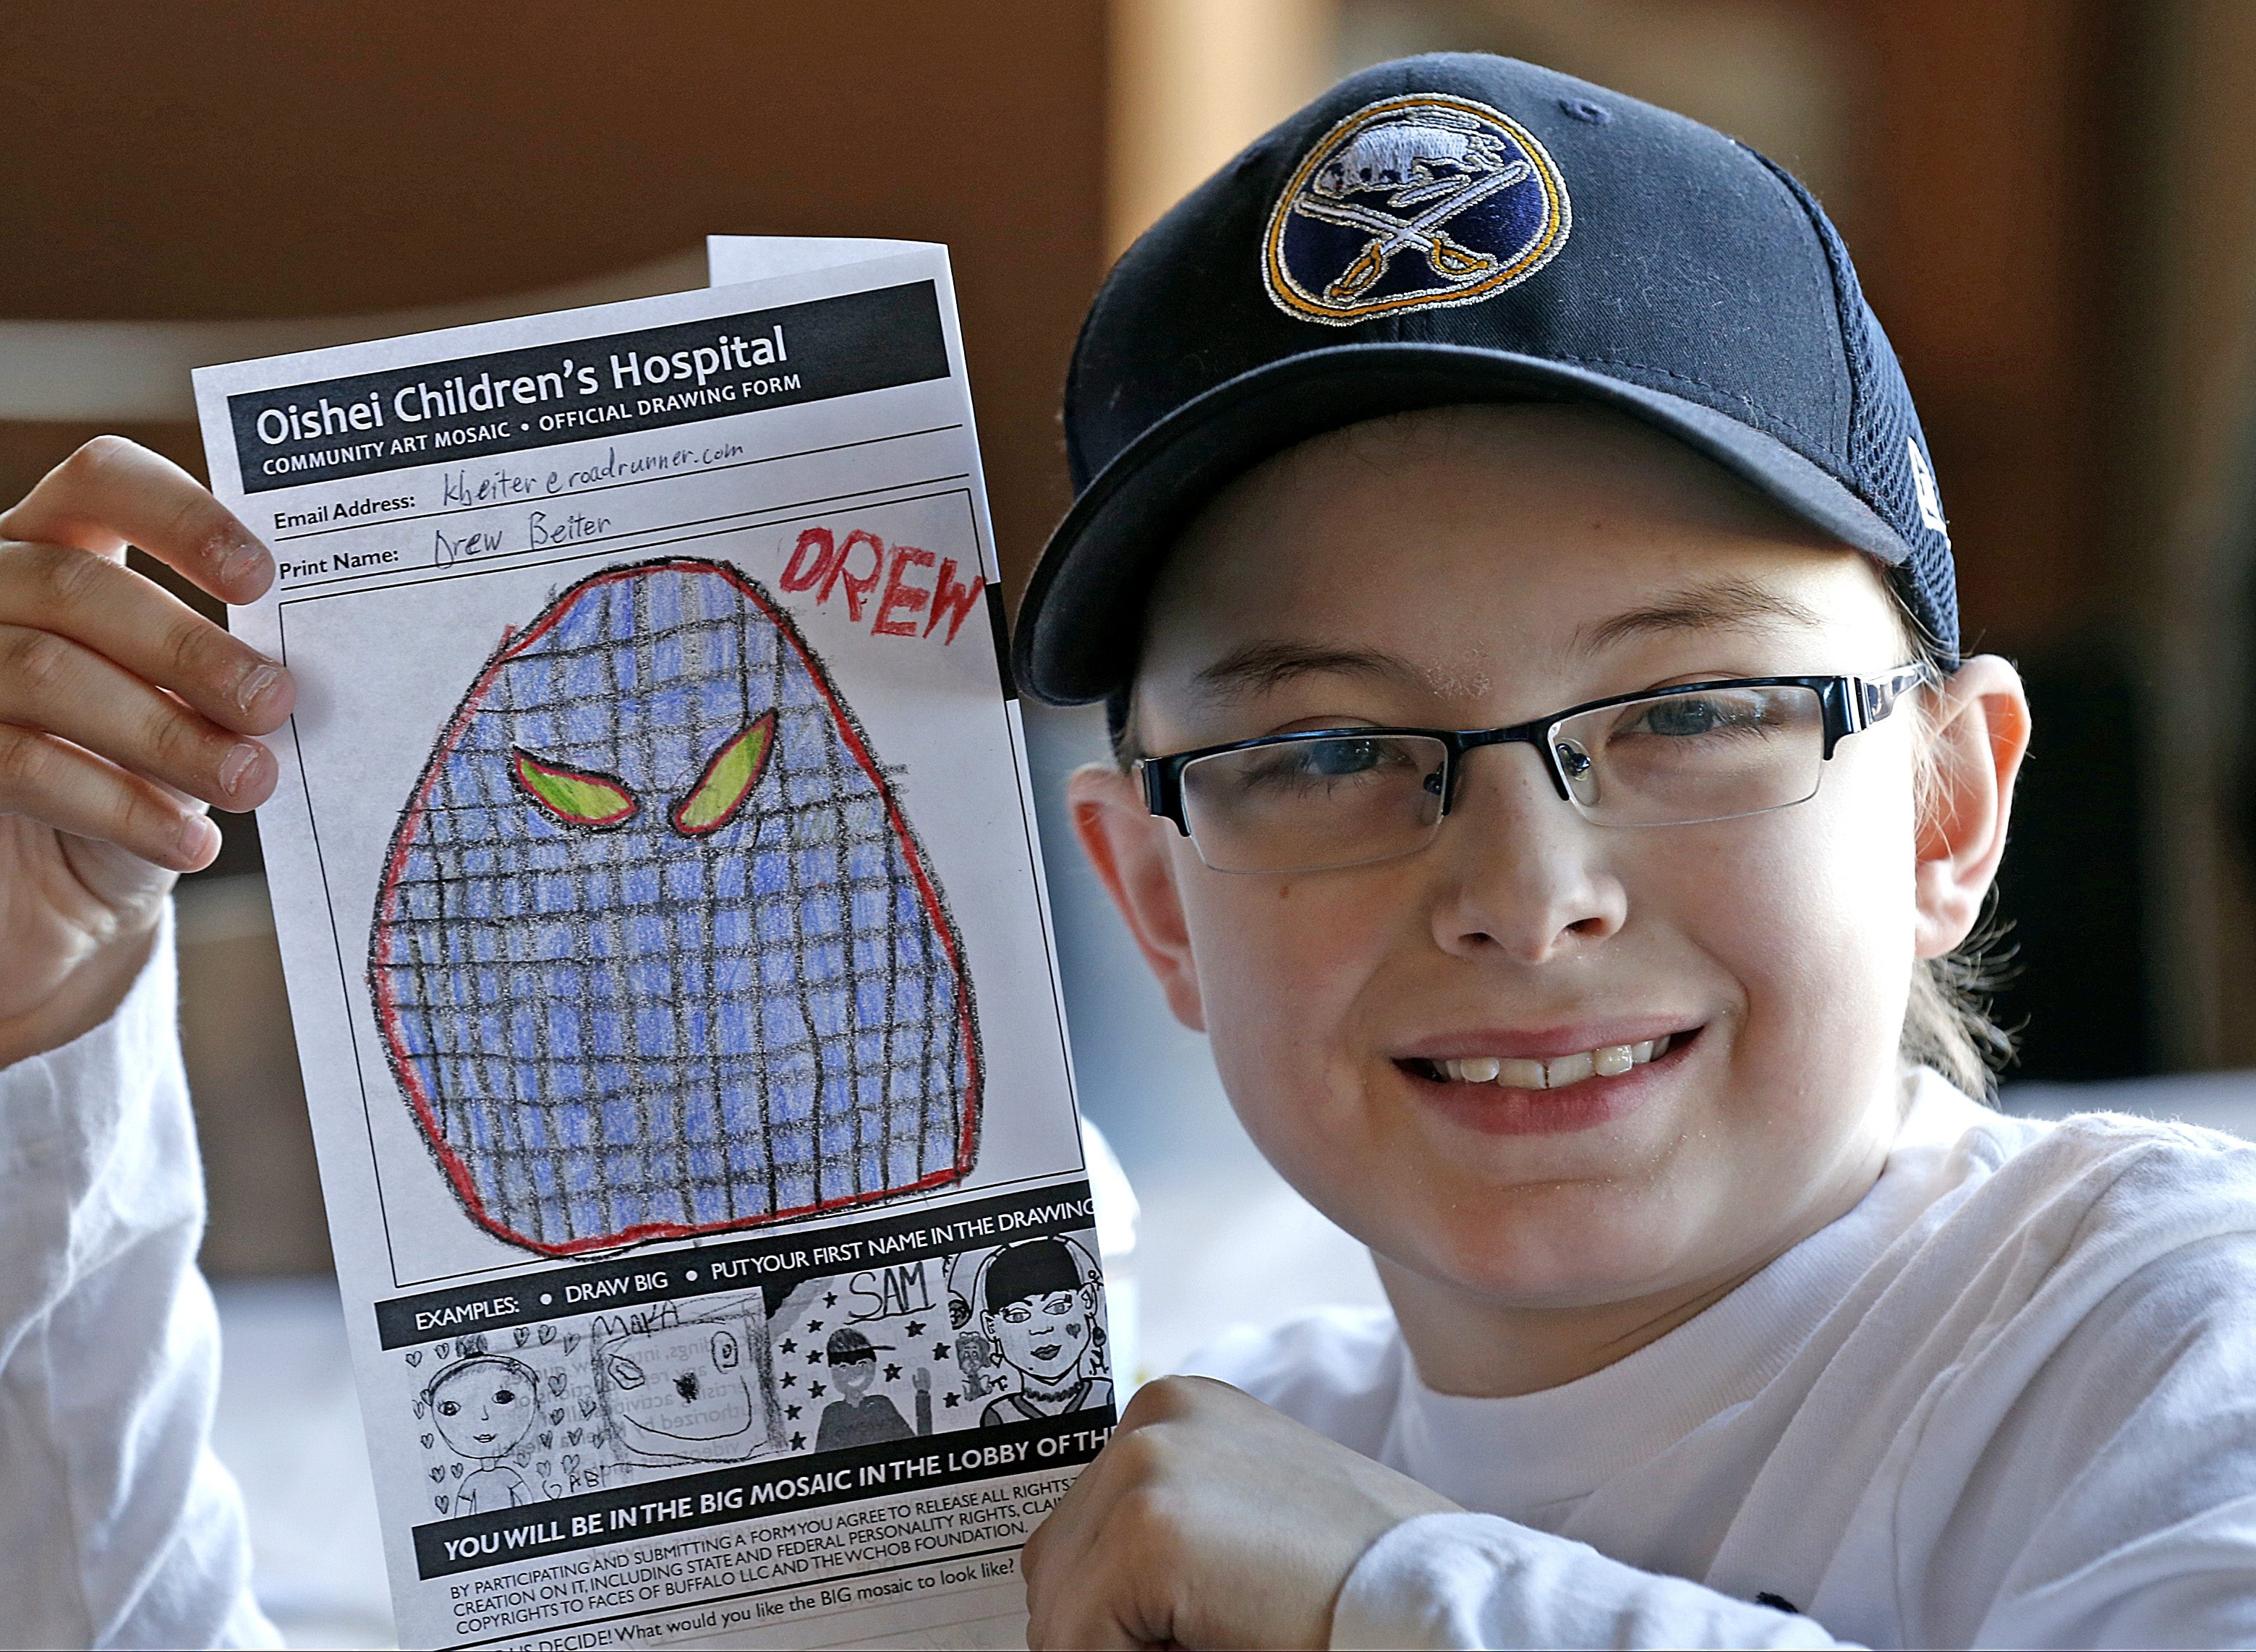 Drew Beiter, 9, of Lockport, displays his drawing of a lacrosse player's face, which will be included in the hospital mosaic. Drew suffers from acute lymphoblastic leukemia.